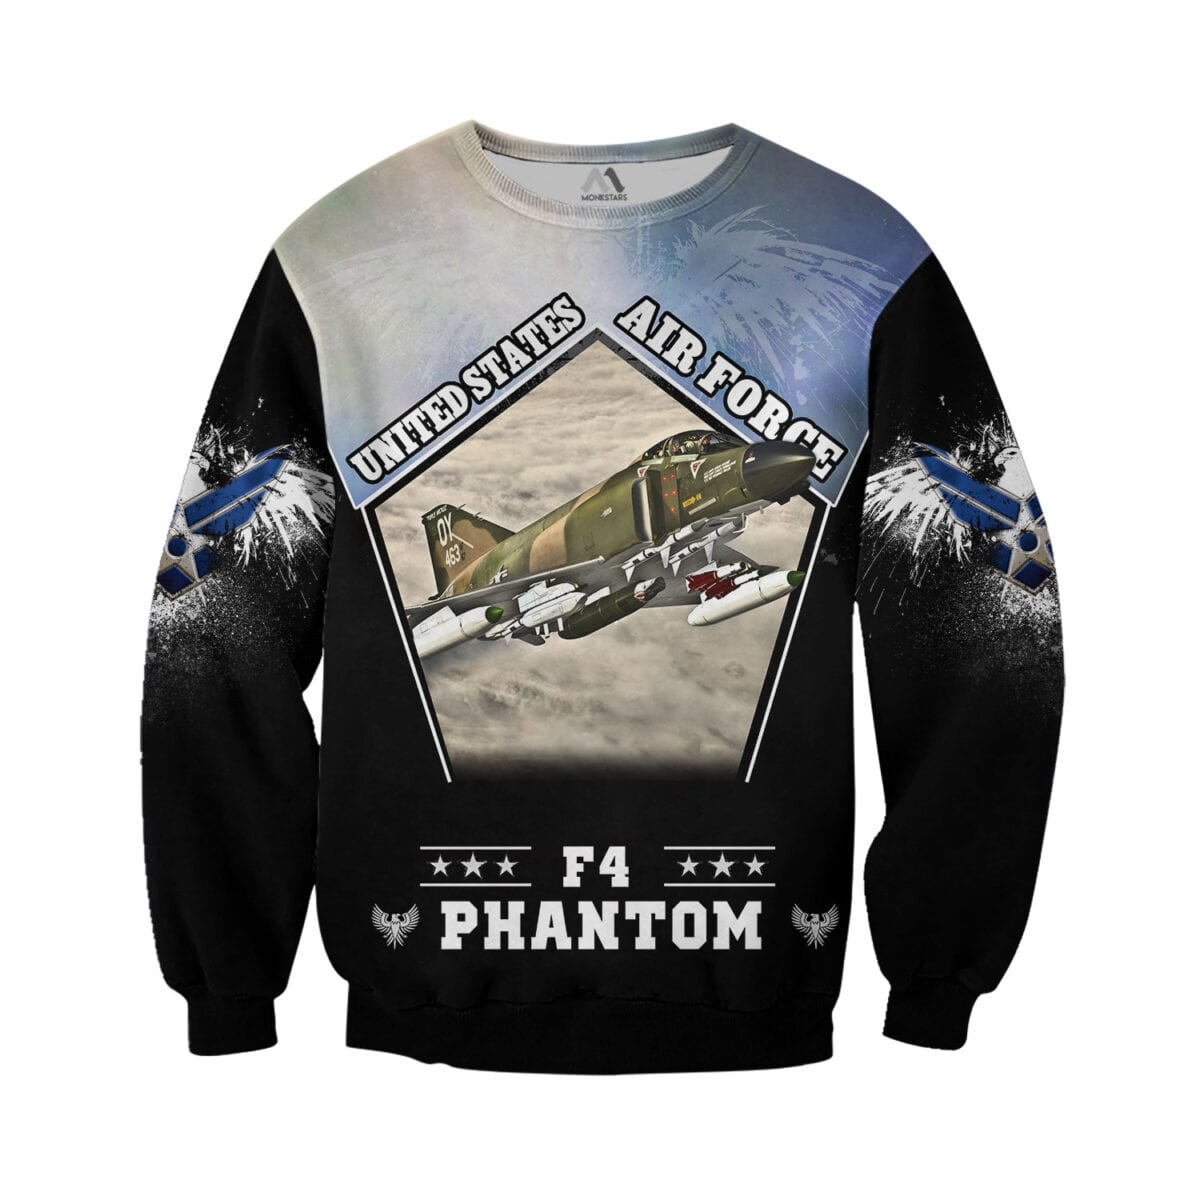 F4 Phantom 3D All Over Printed Shirts for Men and Women 2